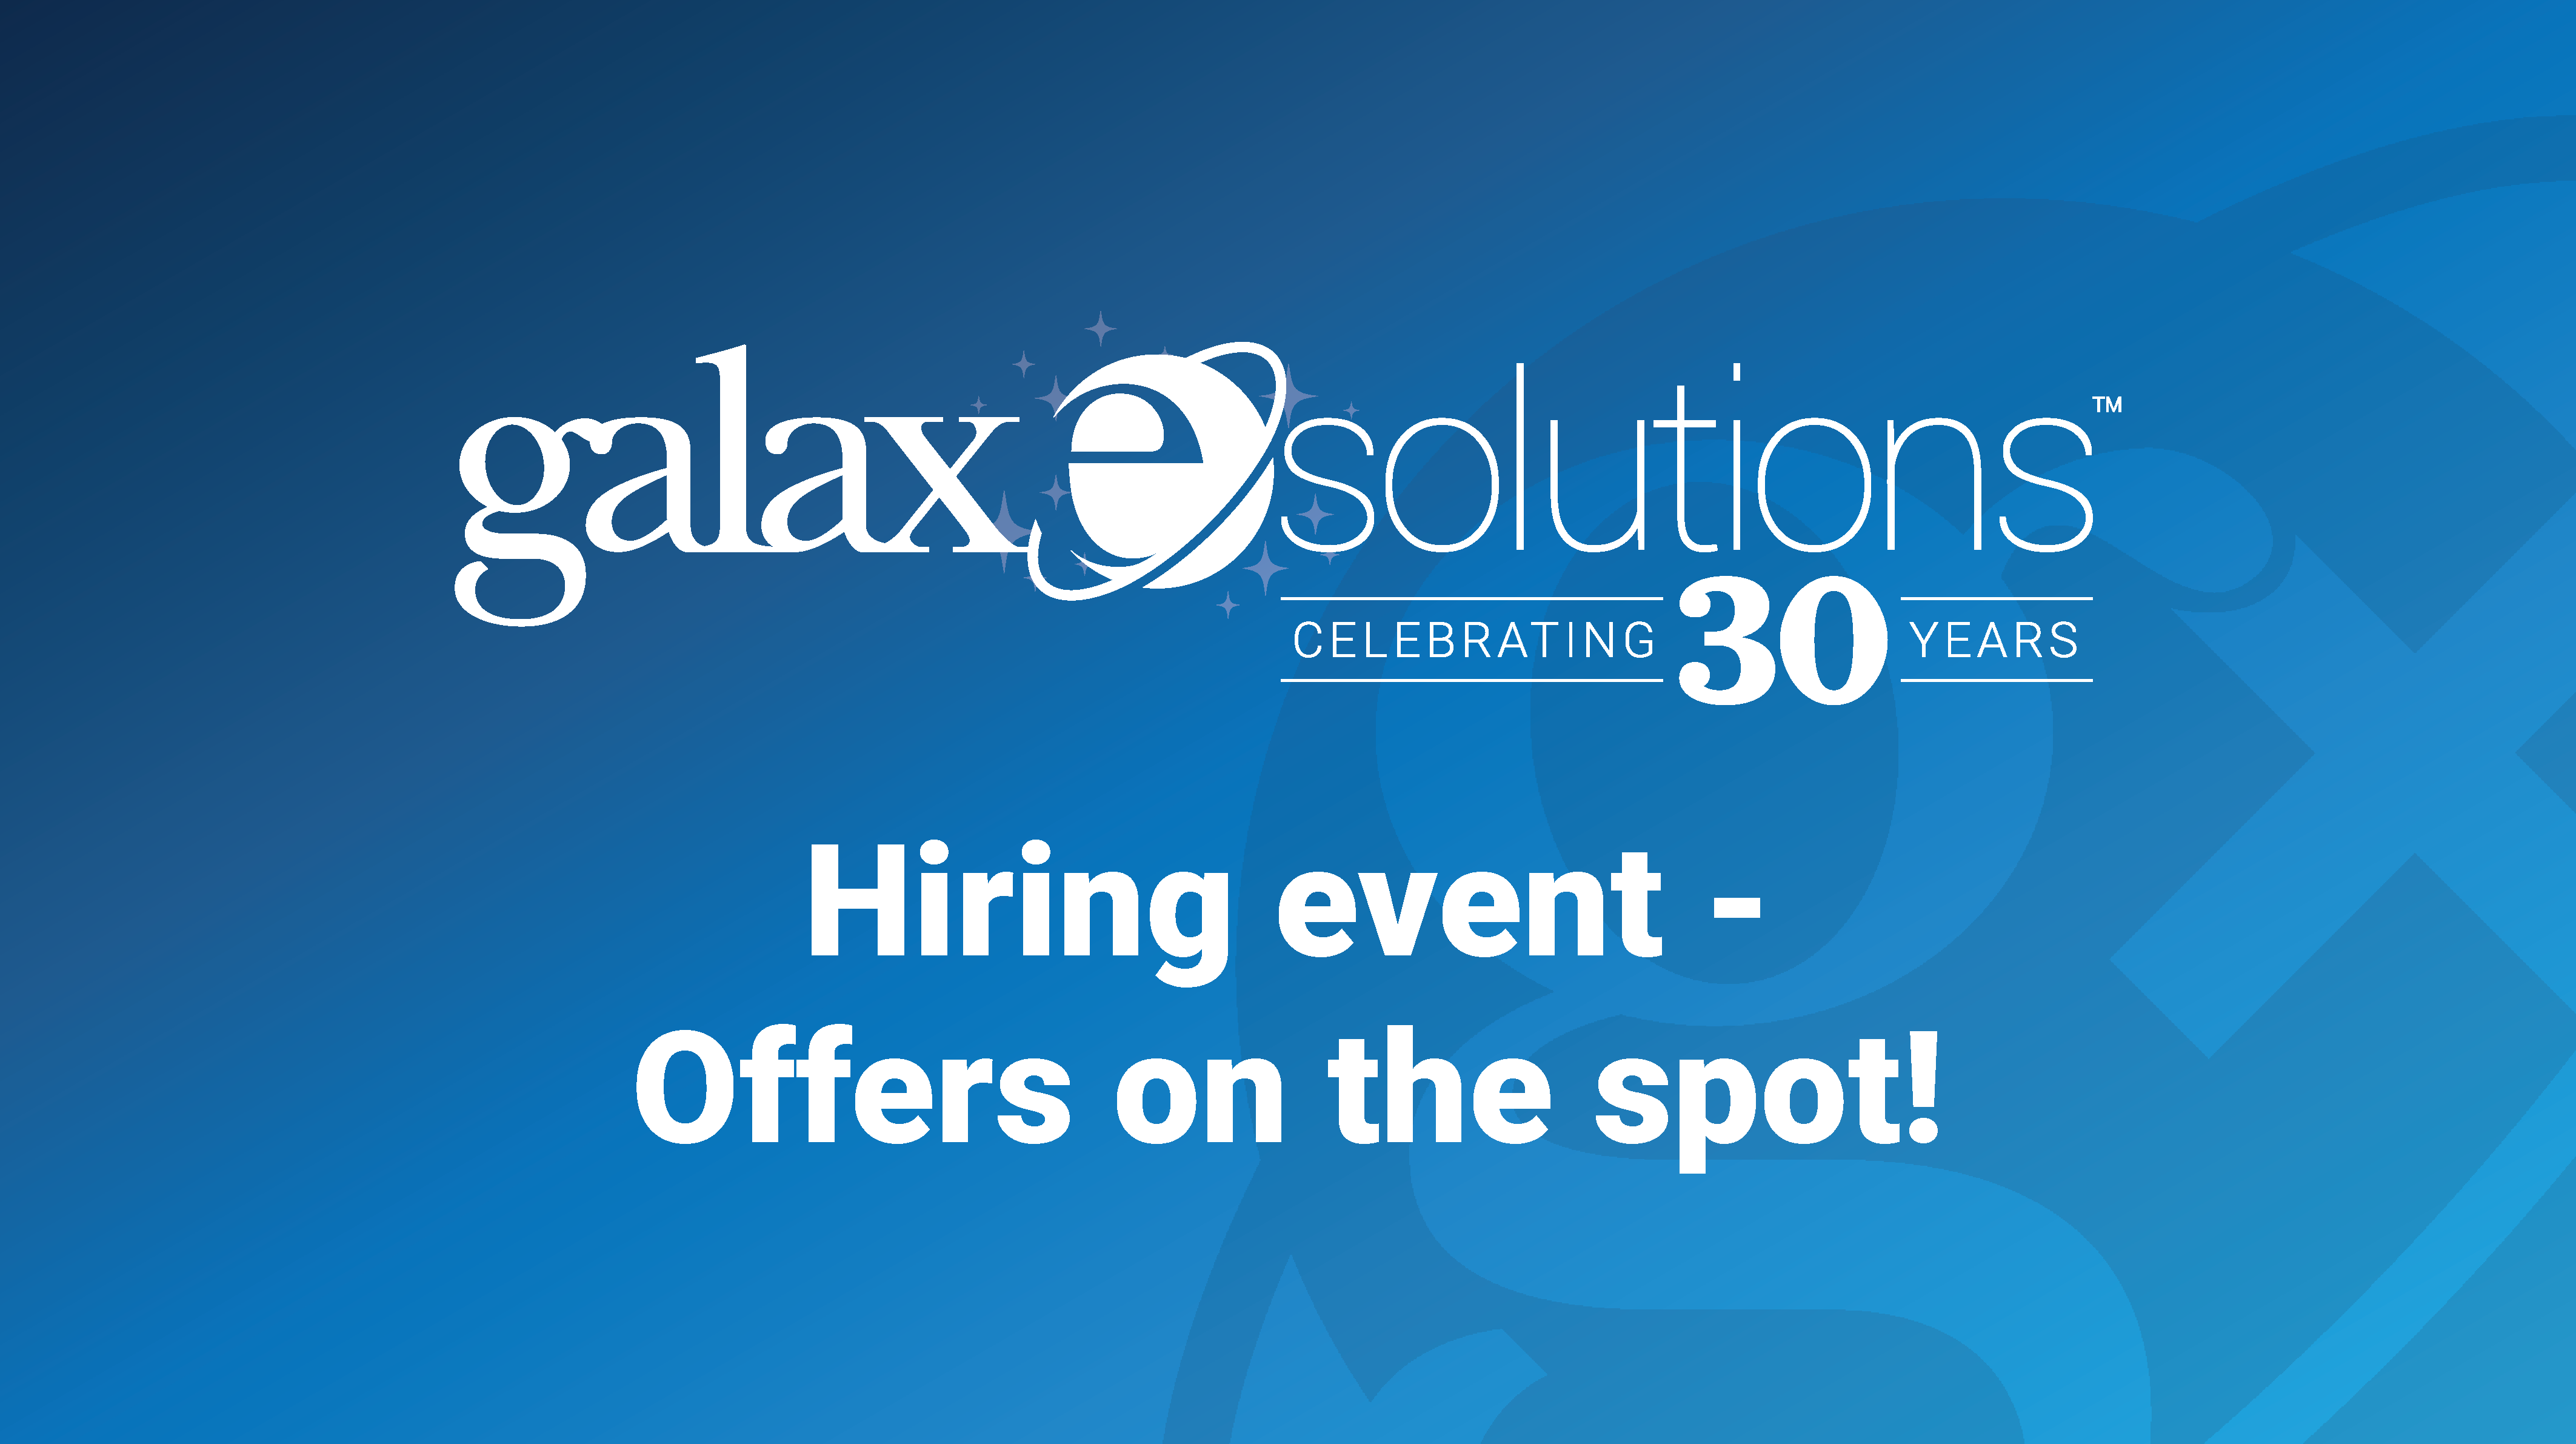 GalaxE.Solutions Announces Hartford Hiring Event on March 4th